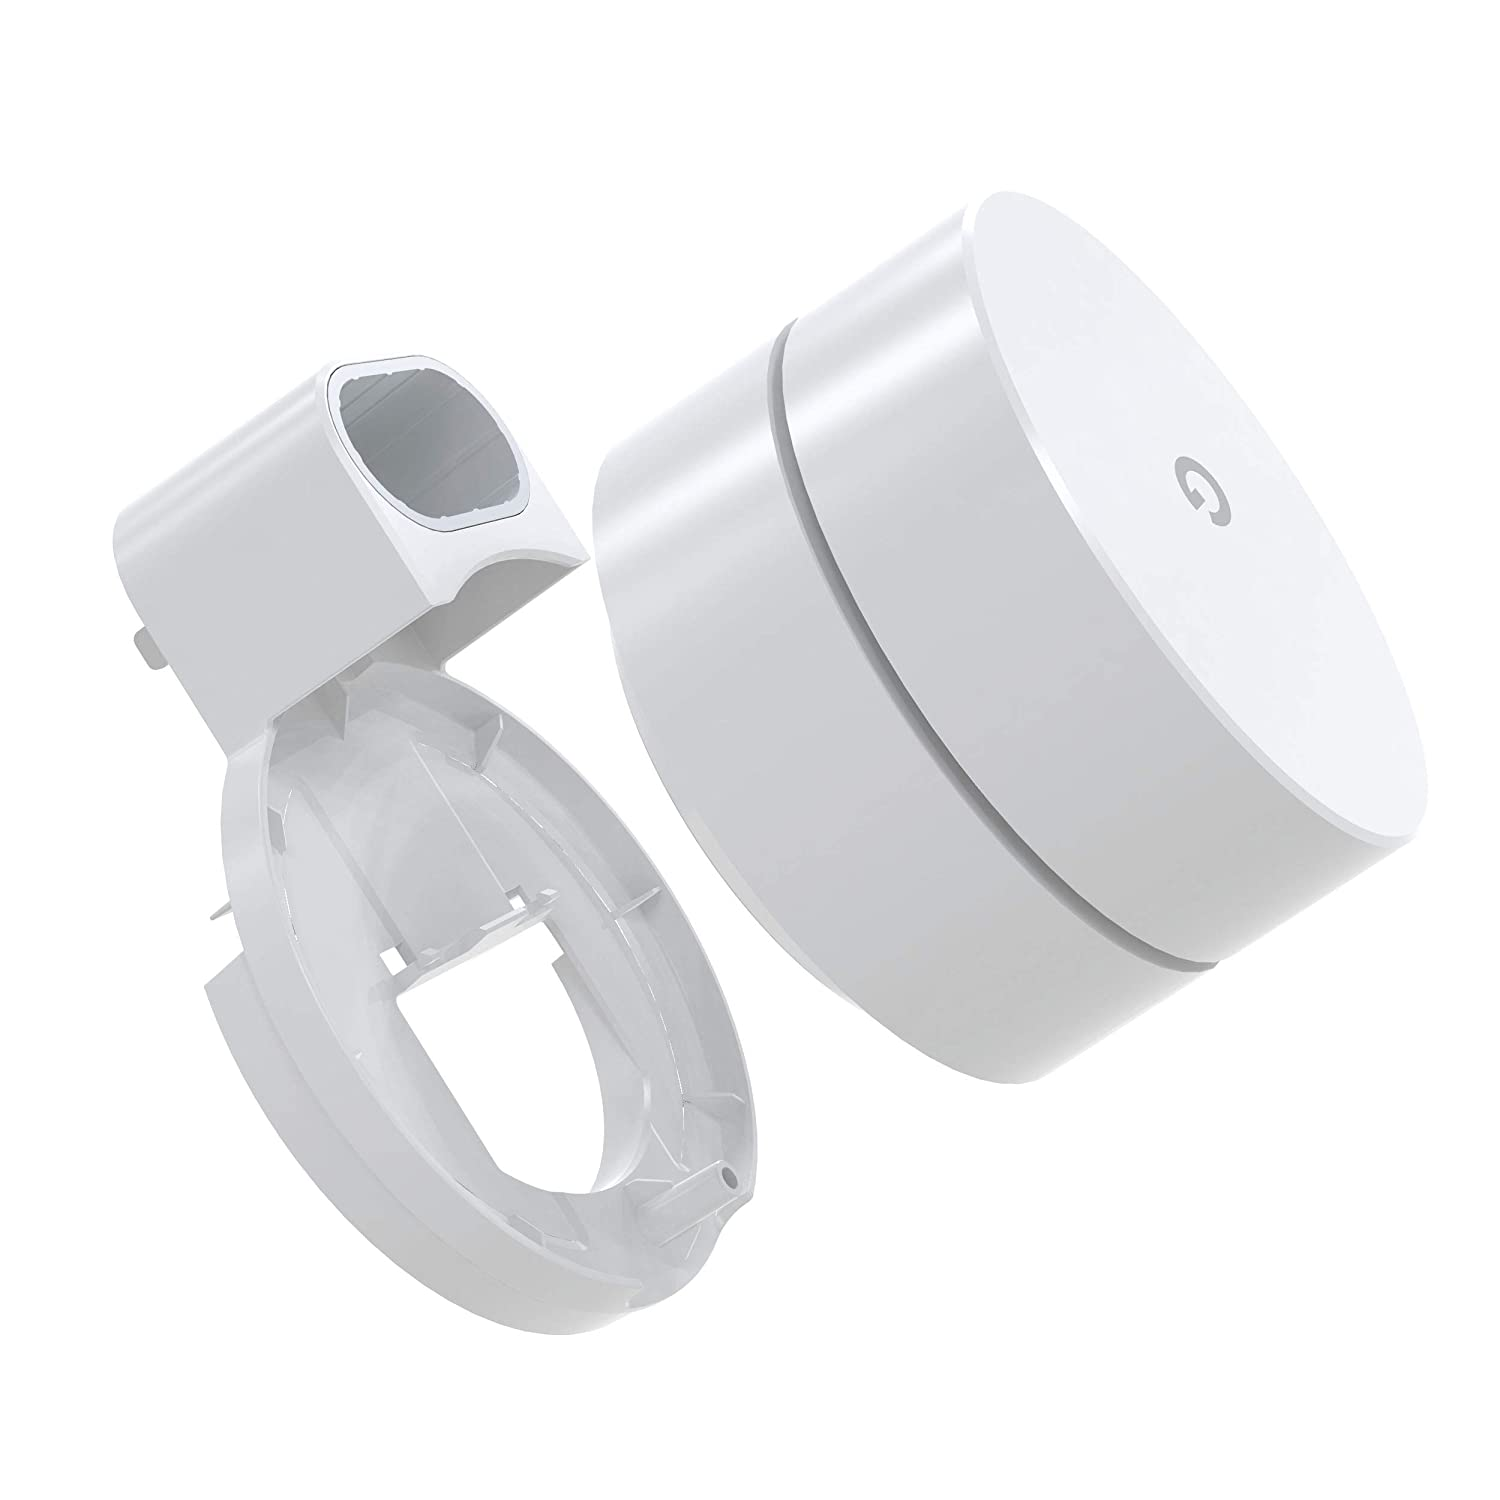 Google WiFi Wall Mount Stouchi No Protruding Parts Mount Holder for Google WiFi System All Blend into One Harmonious 3 Packs